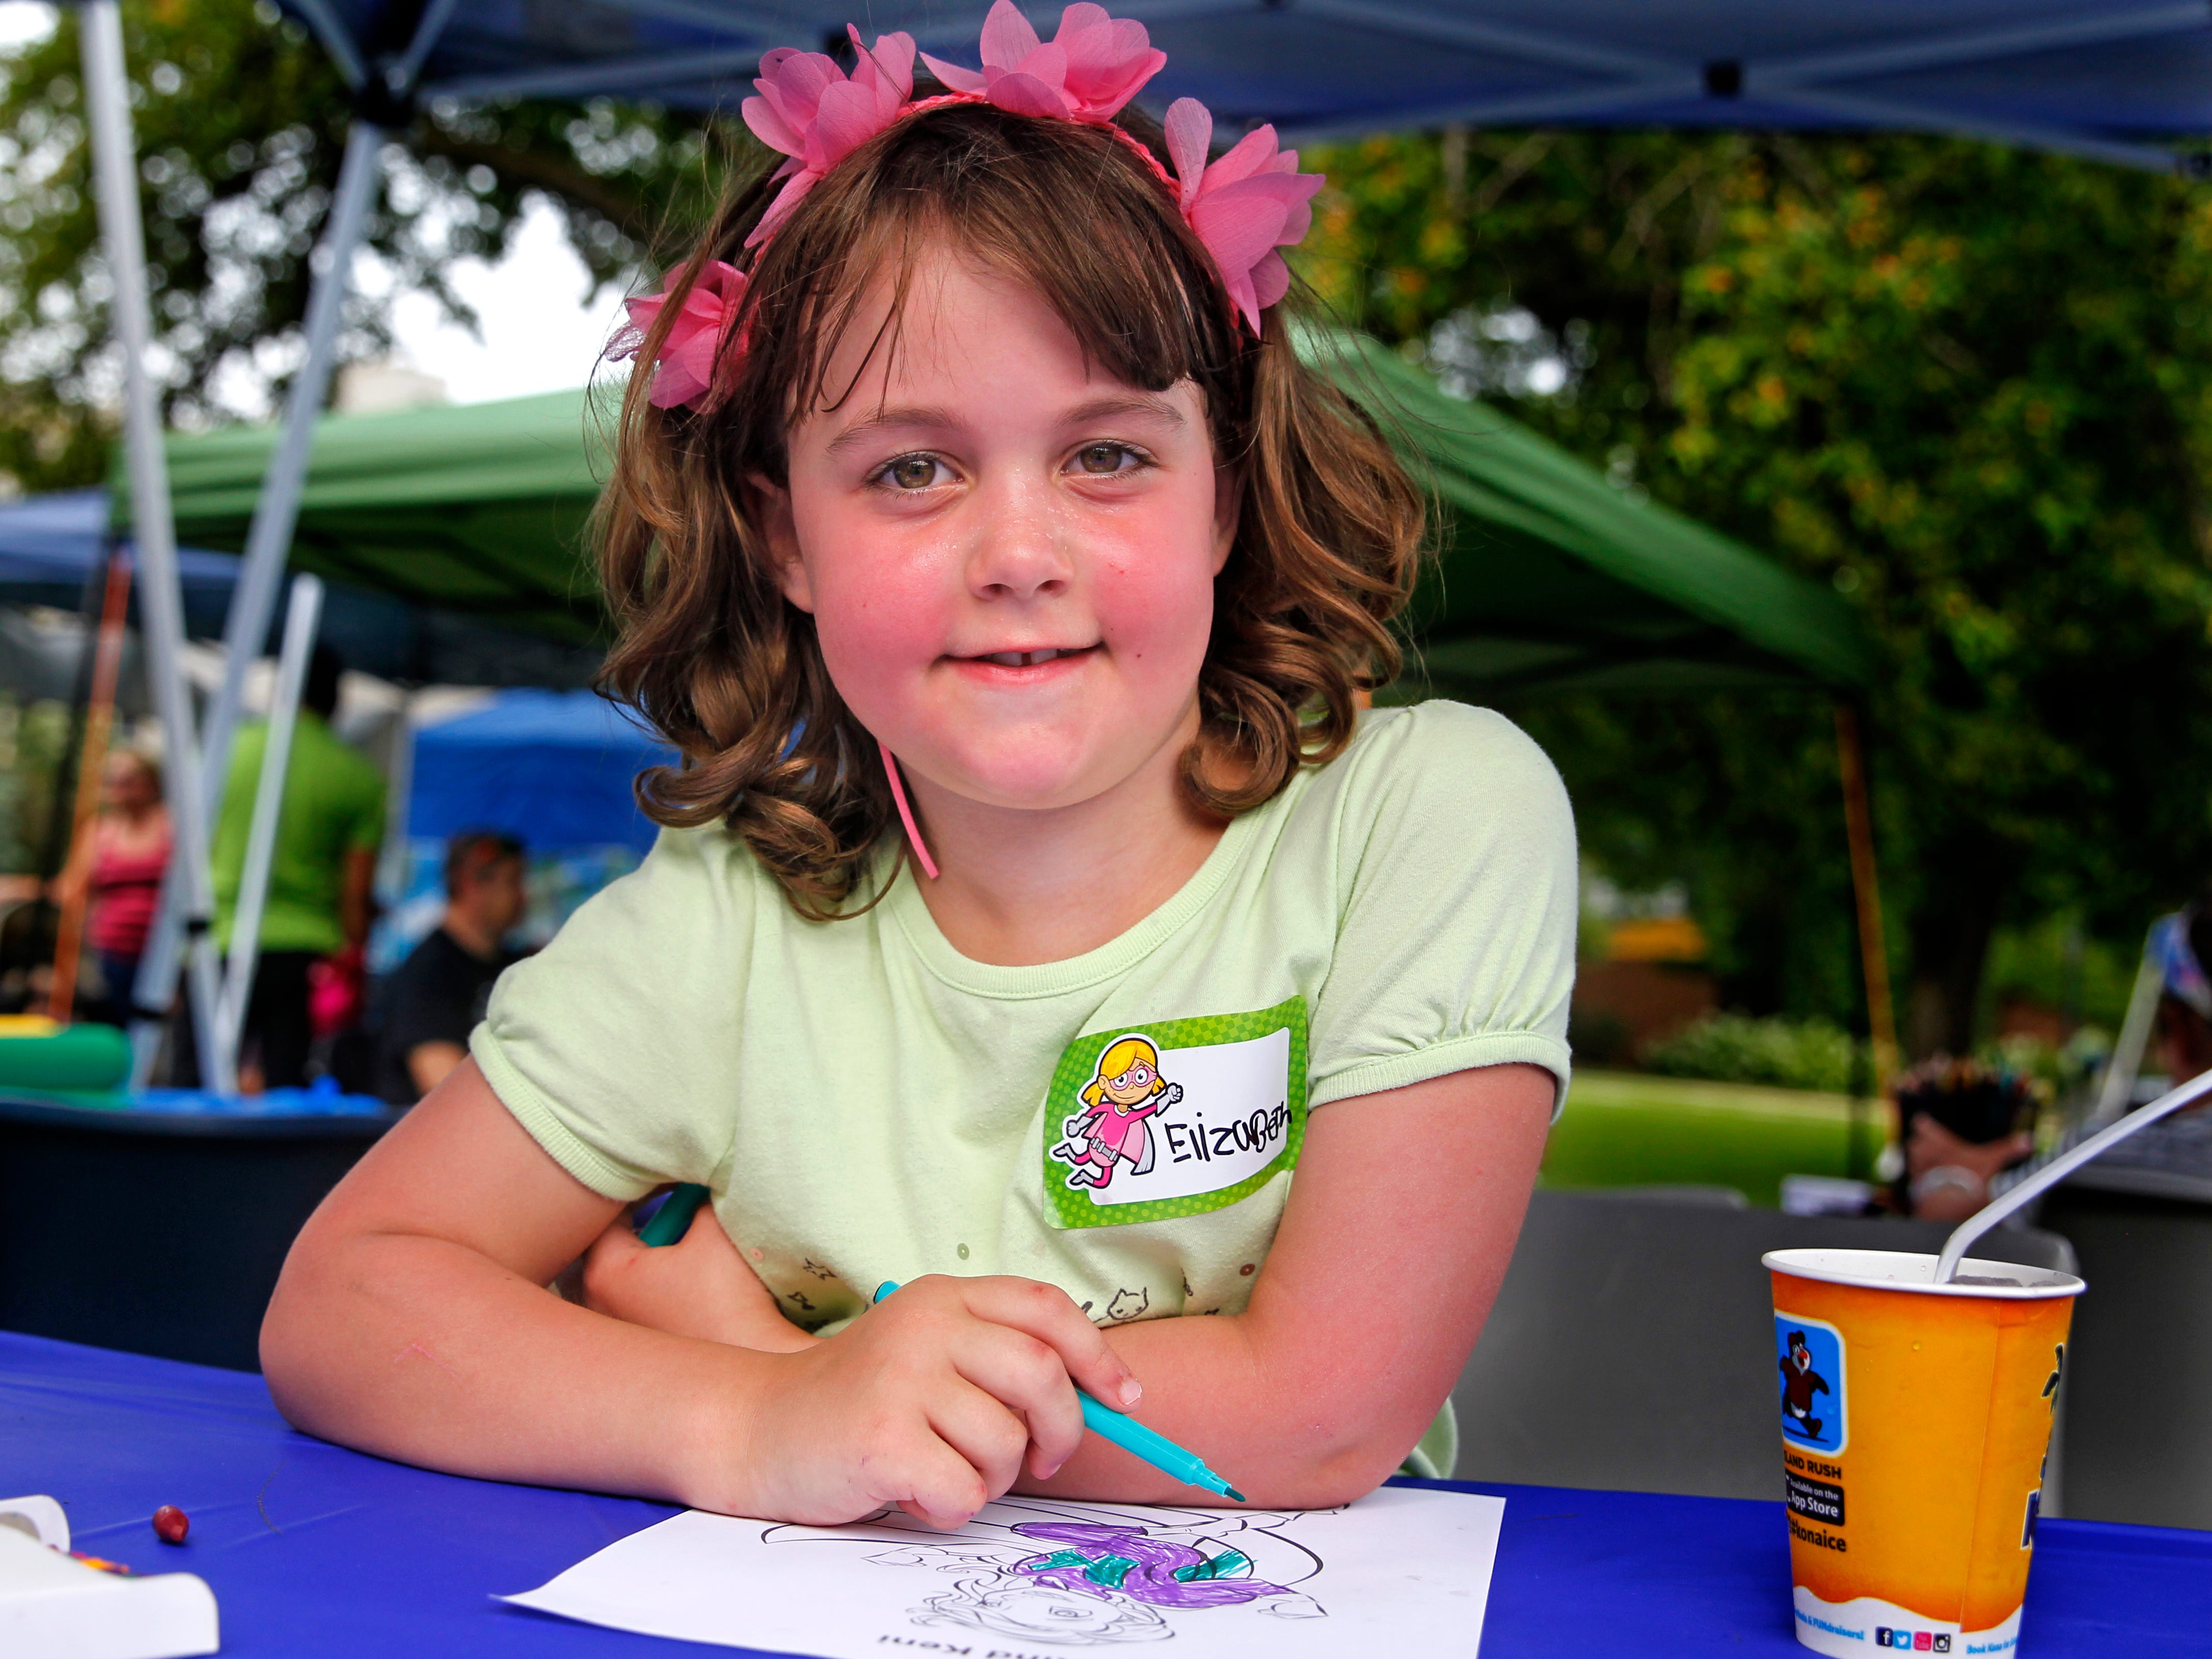 Elizabeth Handrick, 7, of Wauwatosa, pauses for a photo while coloring one of the superheros created by Bryan Dyer, owner of You Are the Hero and an illustrator for kids with chronic or critical conditions on August 4, 2018, the Gamerosity's GameOn at Marquette University. Elizabeth was 4 years old when she was diagnosed with leukemia. Her mother, Martha, said as part of her healing after her treatment she wanted to celebrate with having Dyer create a superhero for her. Elizabeth met Dyer for the first time at the GameOn event.  The event brings awareness to children and families affected by childhood cancers.